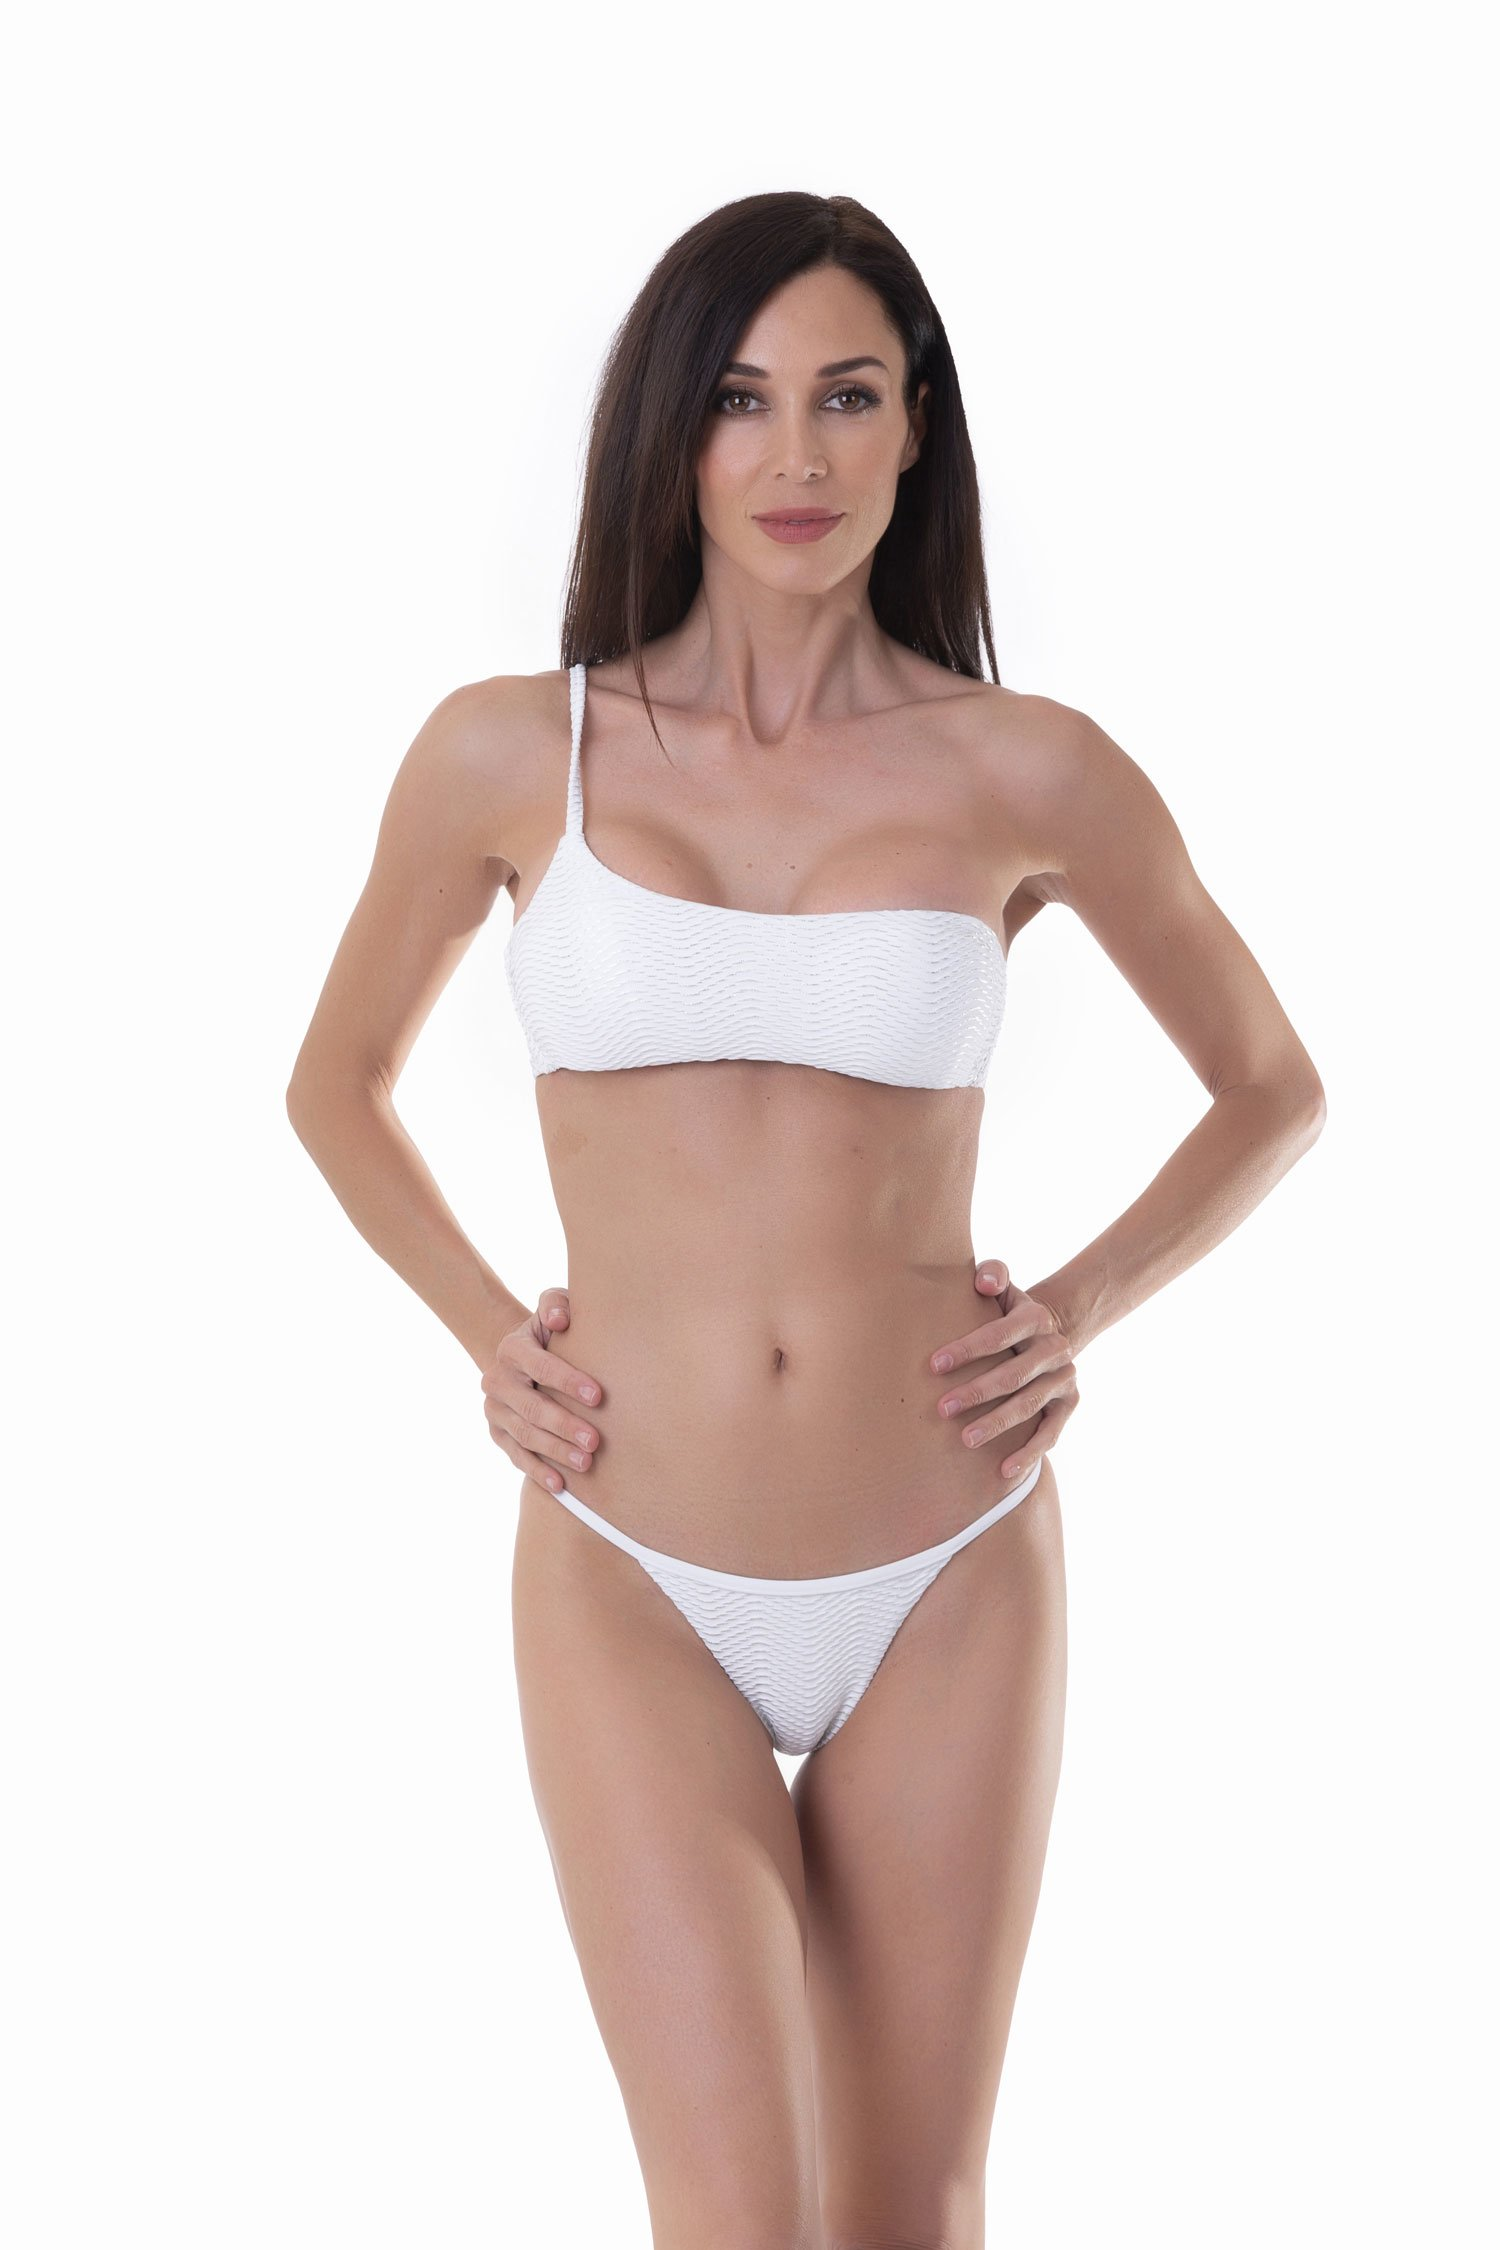 ONE SHOULDER BIKINI IN OPERATED MICROFIBER - Bianco